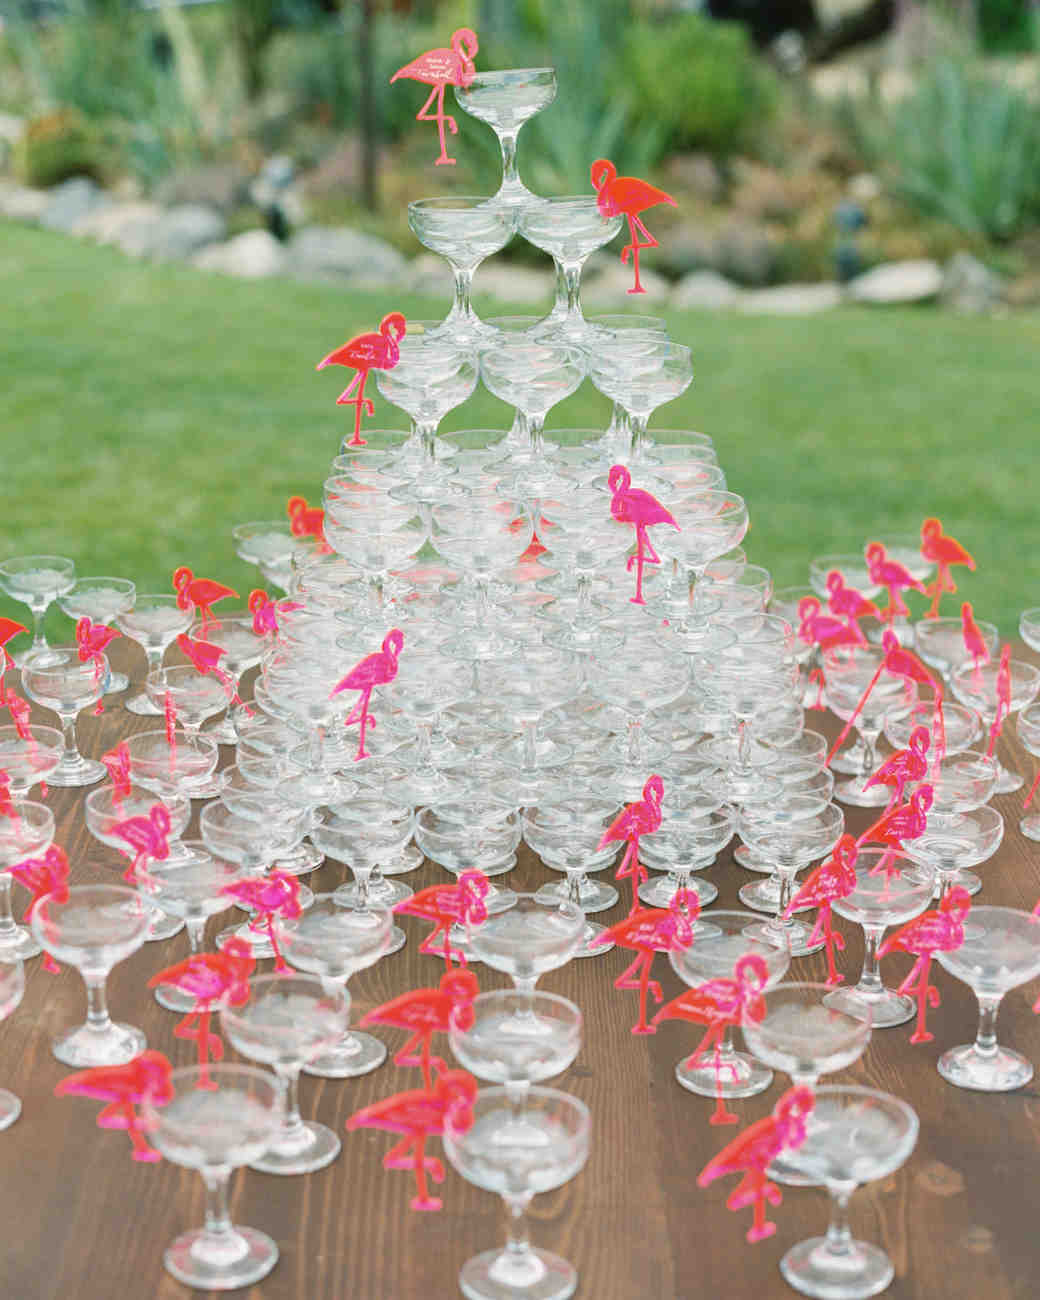 25 Seasonal Ideas For Your Summer Wedding Reception